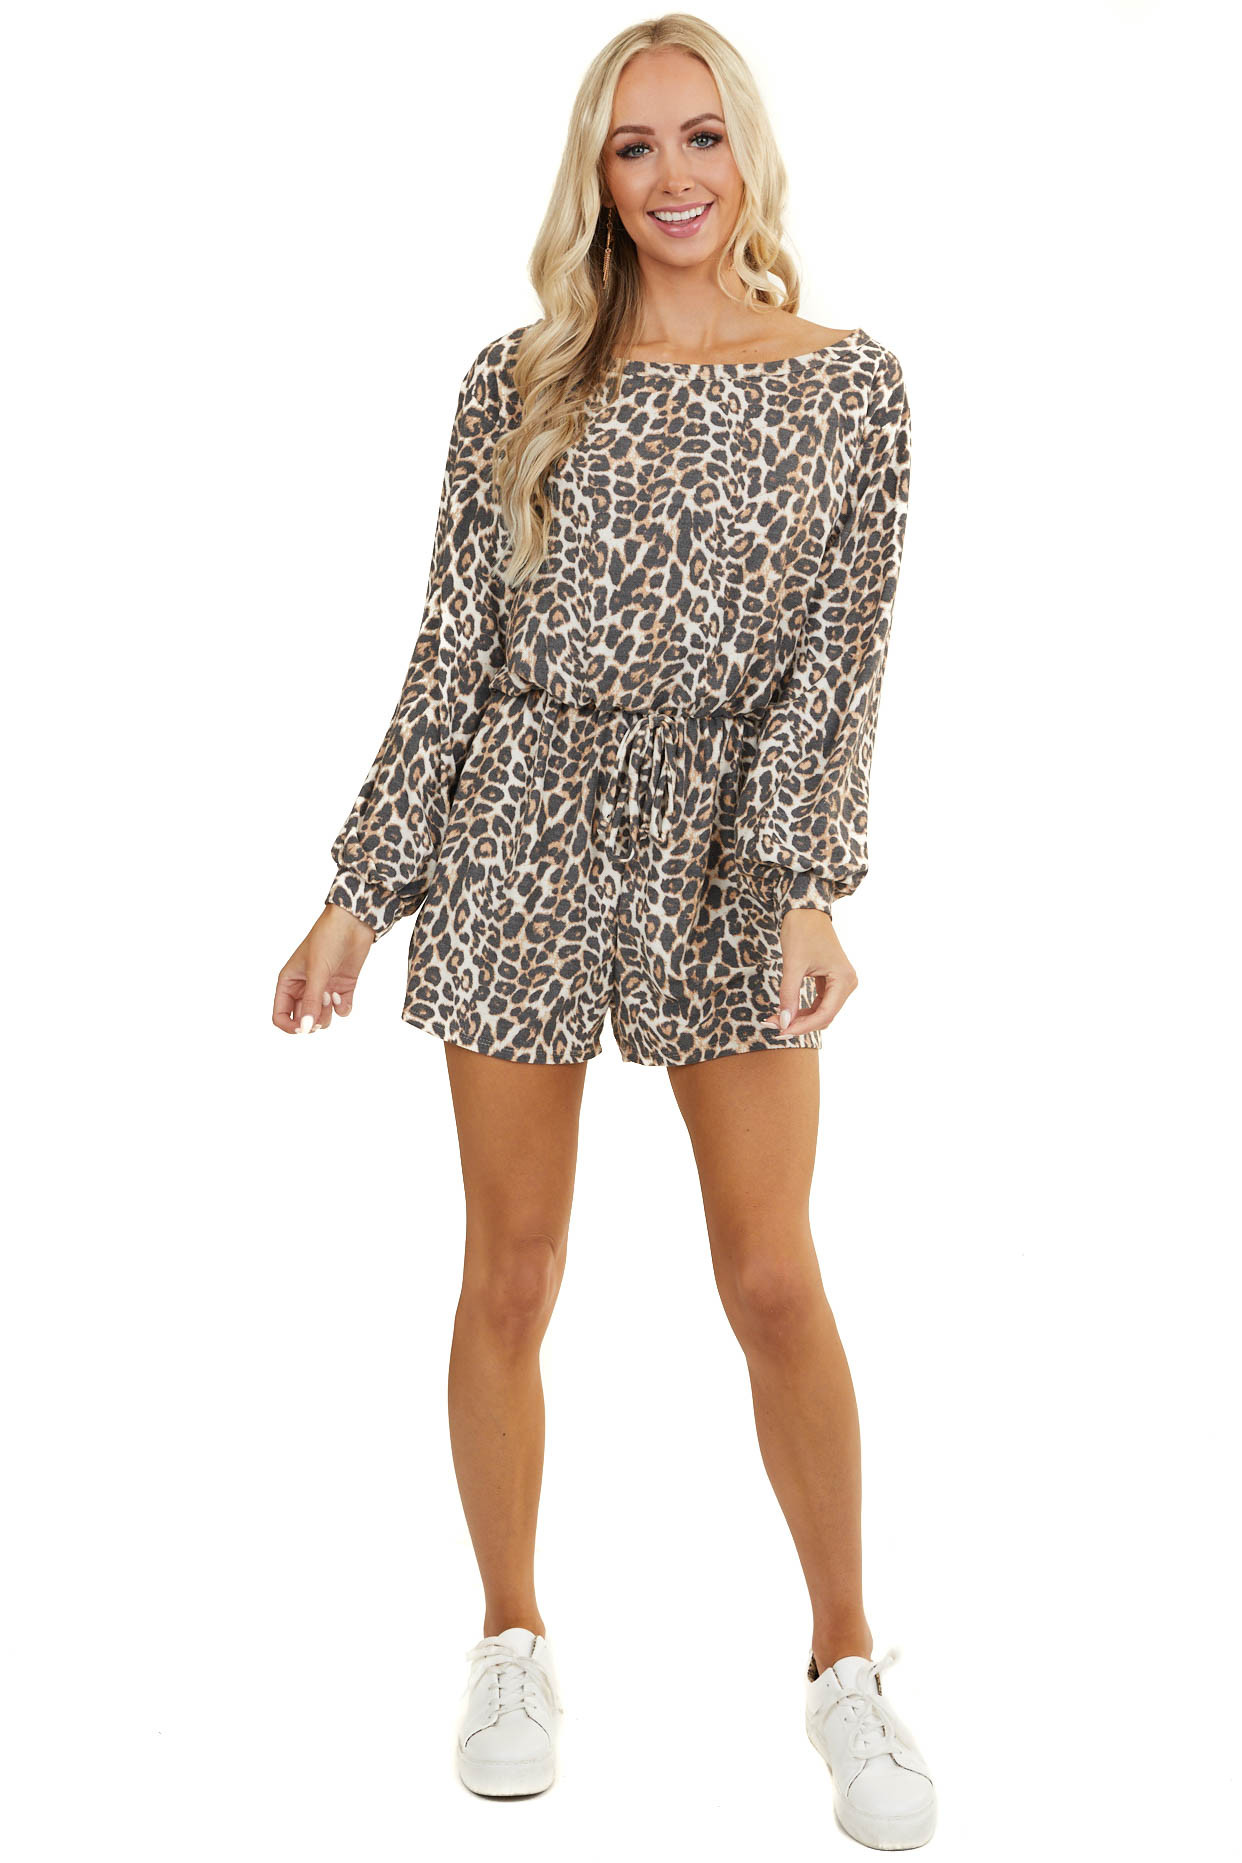 Ivory Leopard Print Long Sleeve Knit Romper with Tie Detail